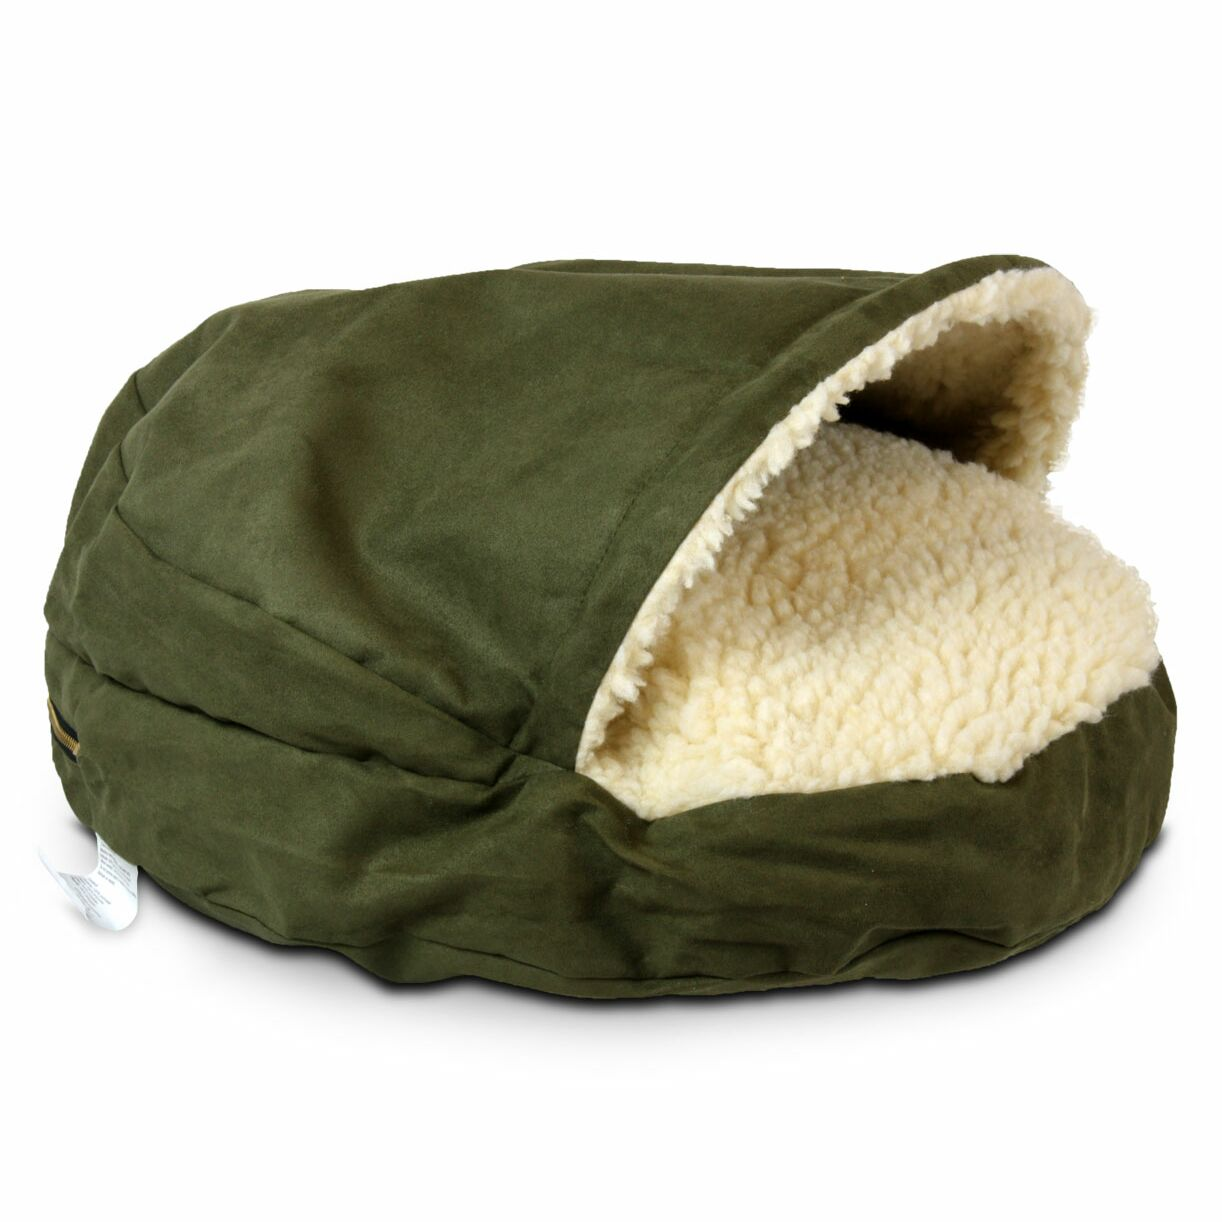 Christal Luxury Orthopedic Hooded Dog Bed Color: Olive, Size: Small - 25